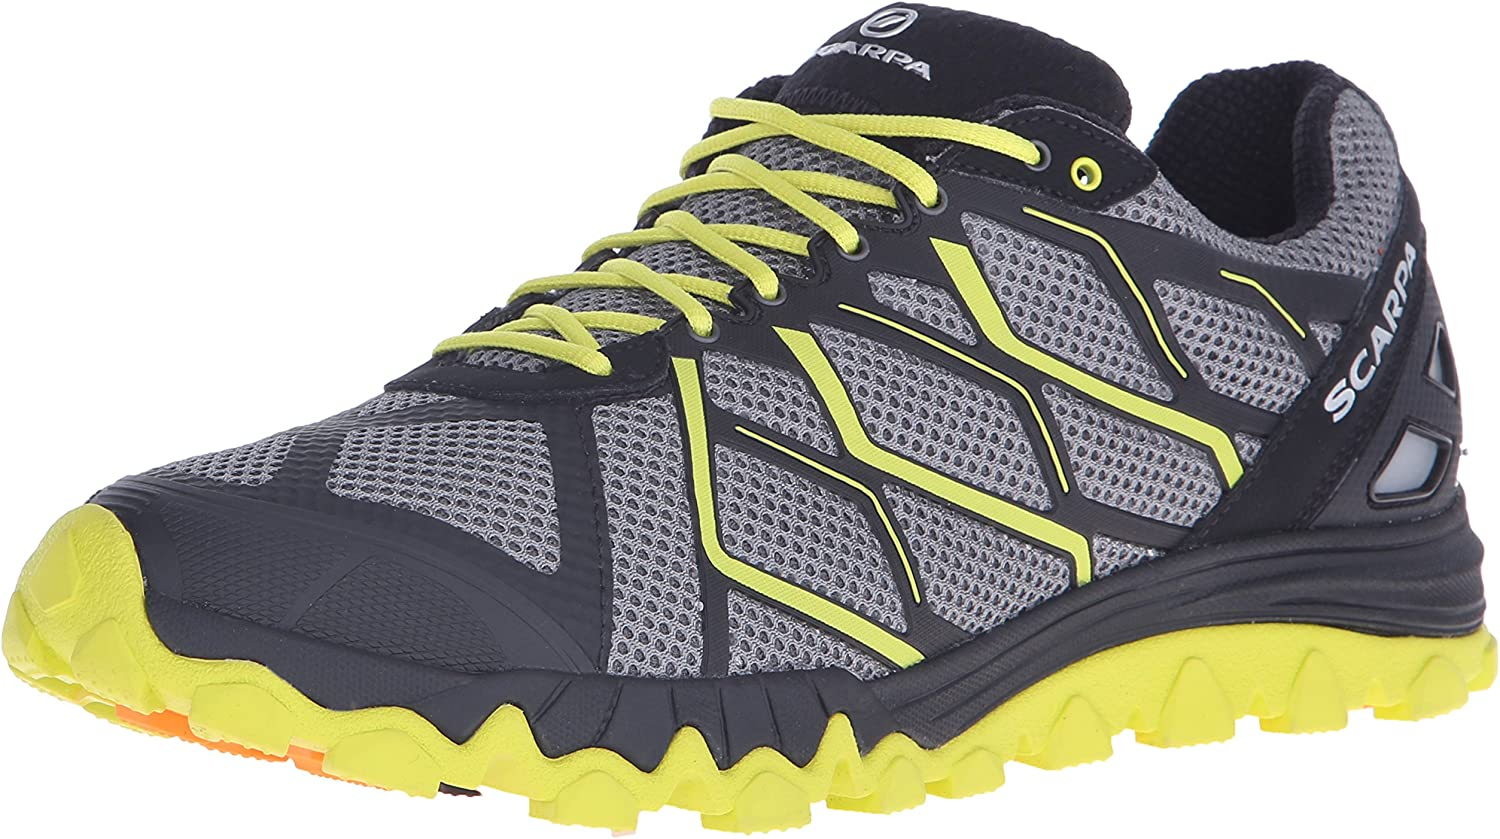 SCARPA Men's Proton Trail Running Shoe Runner